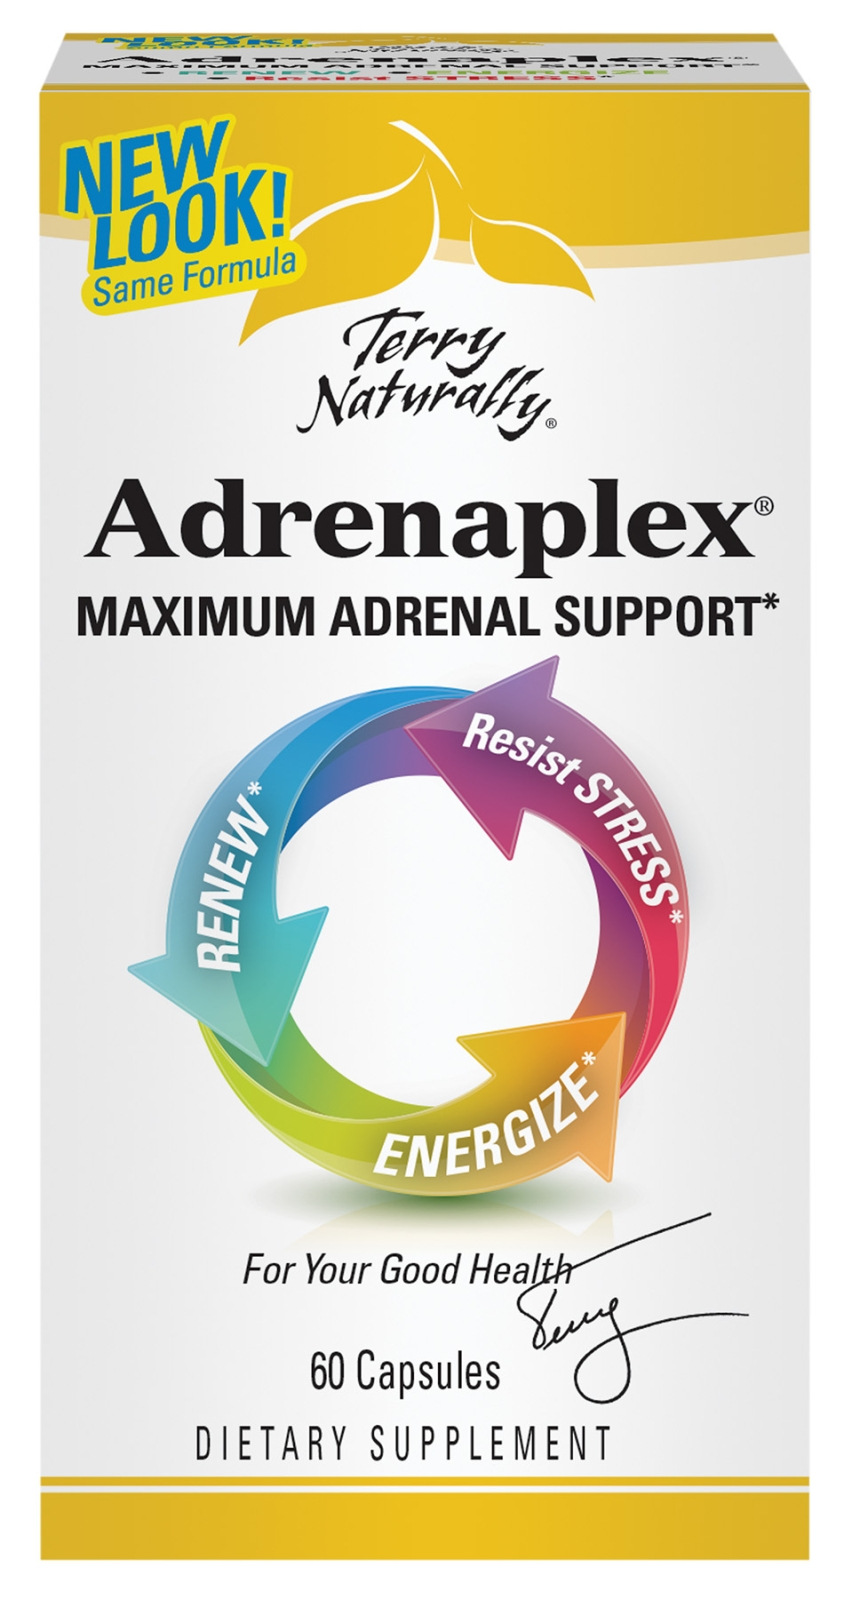 Terry Naturally Adrenaplex 60 caps by EuroPharma